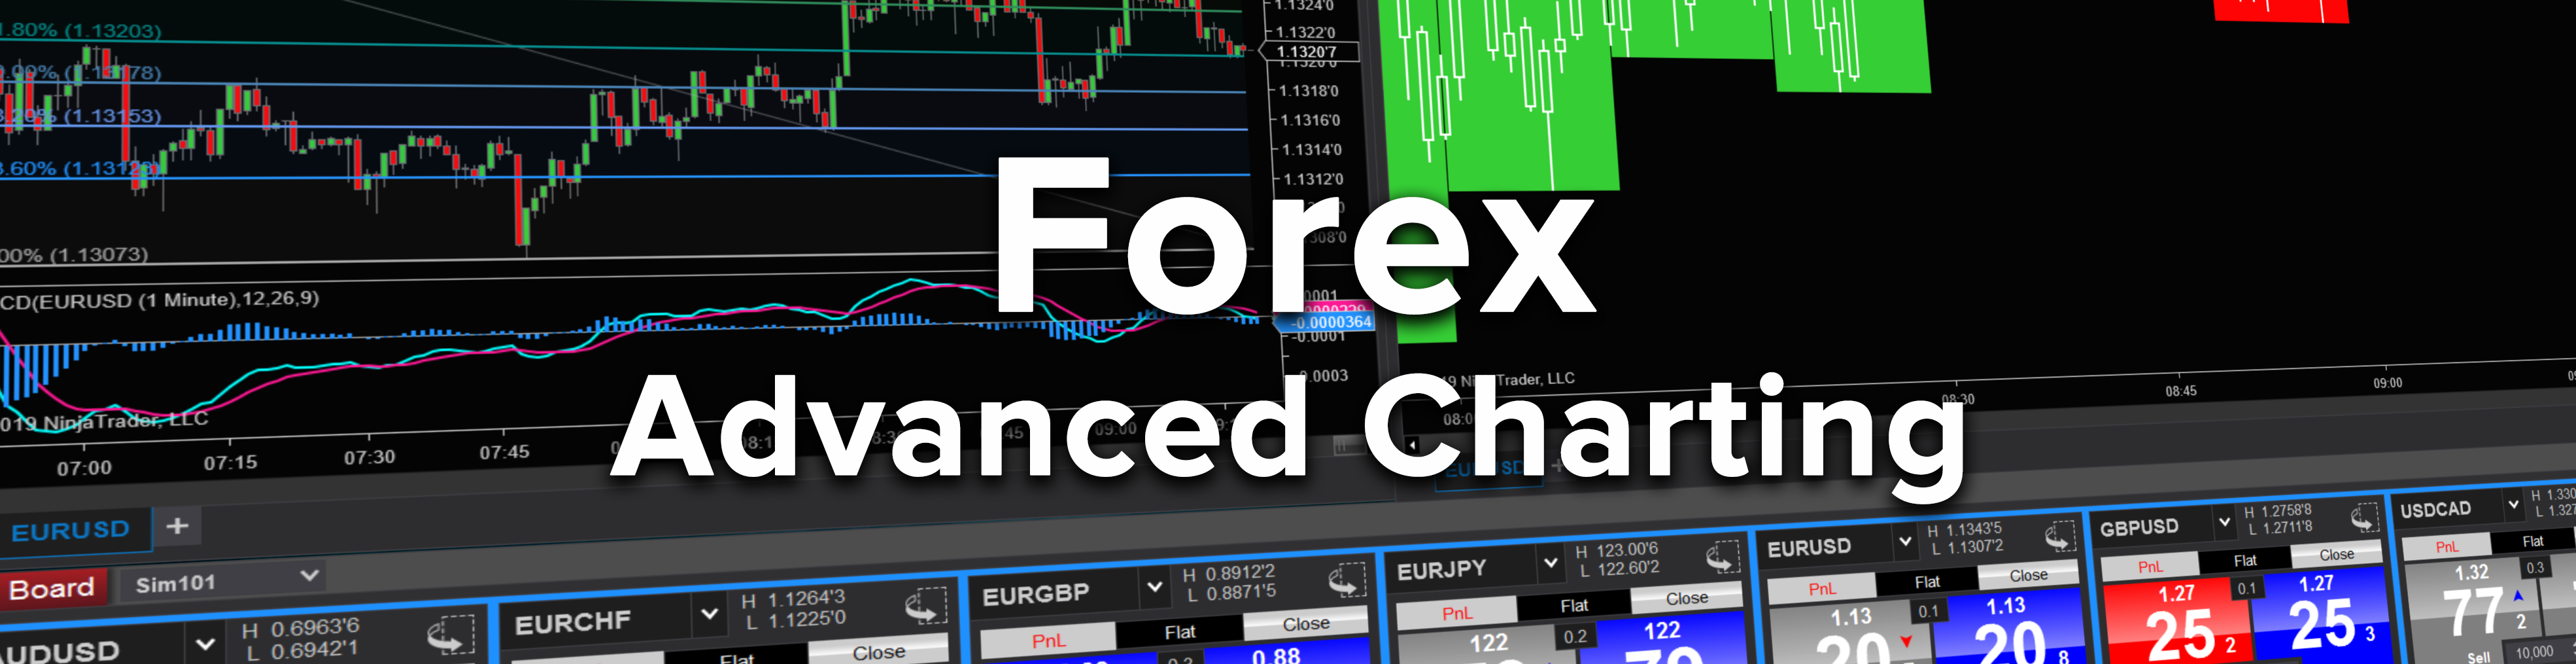 Trading forex with ninjatrader investment research challenge paper cutting